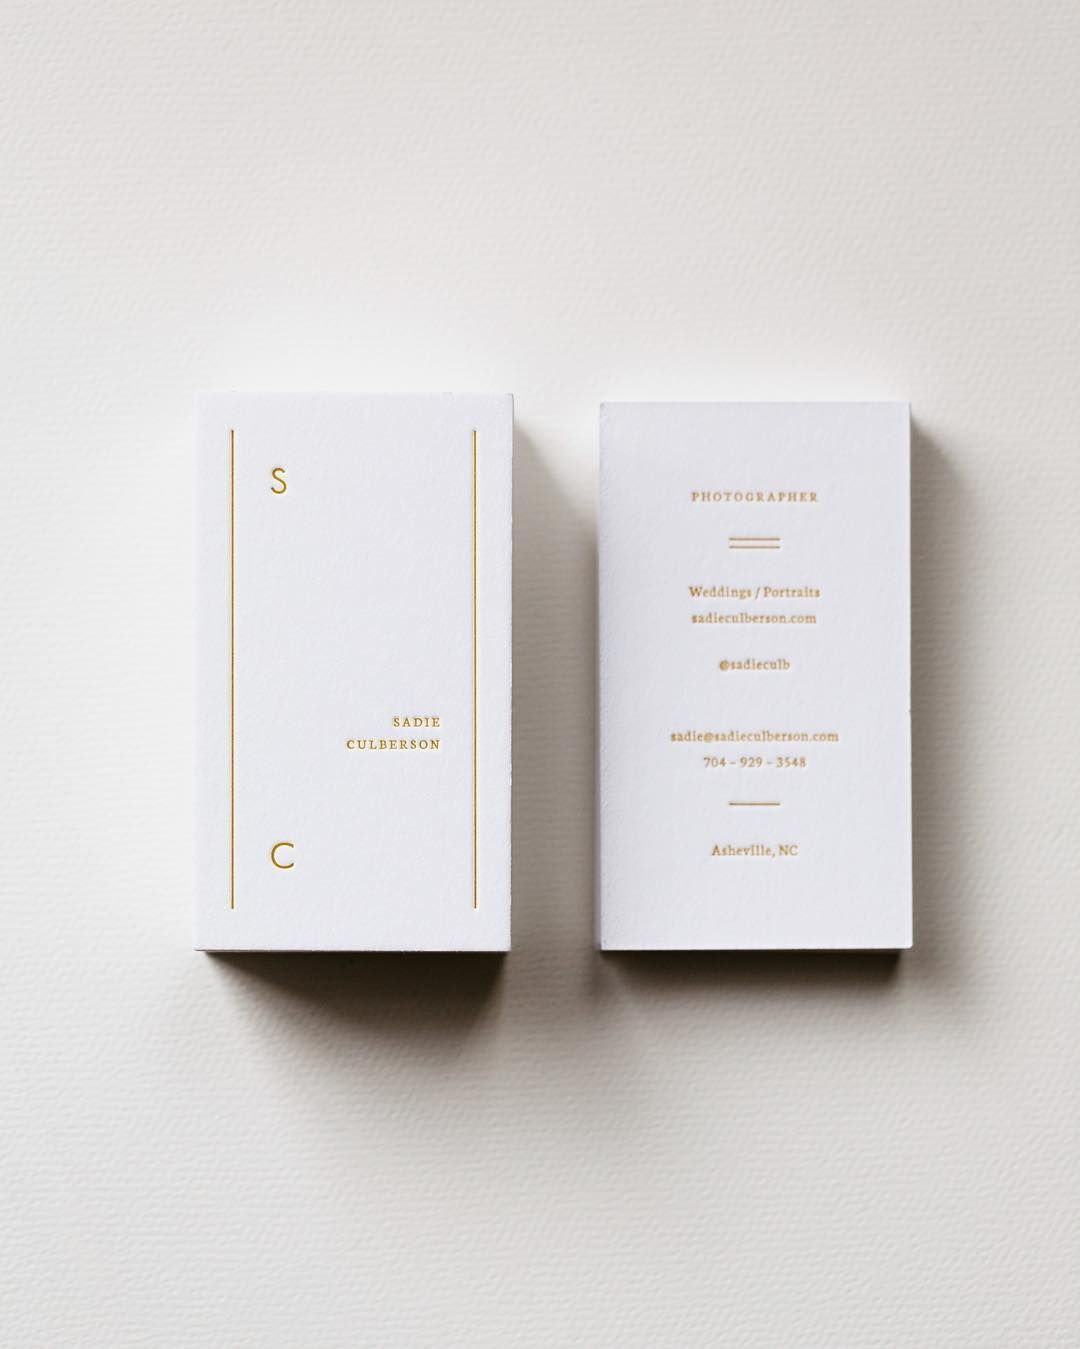 sophisticated business cards | Branded Collateral | Pinterest ...